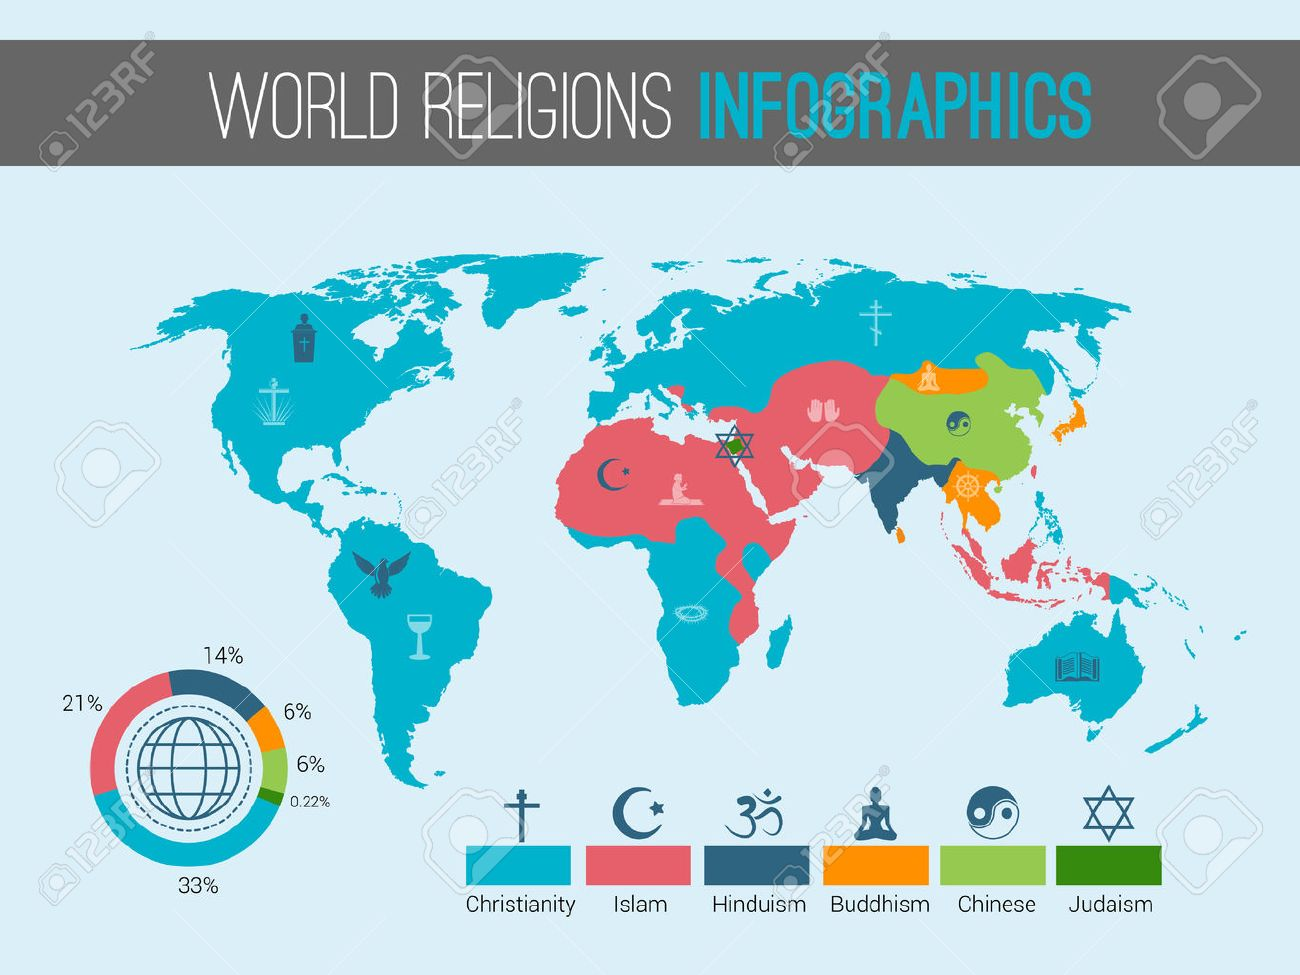 a history of the growth and spread of christianity as a global religion